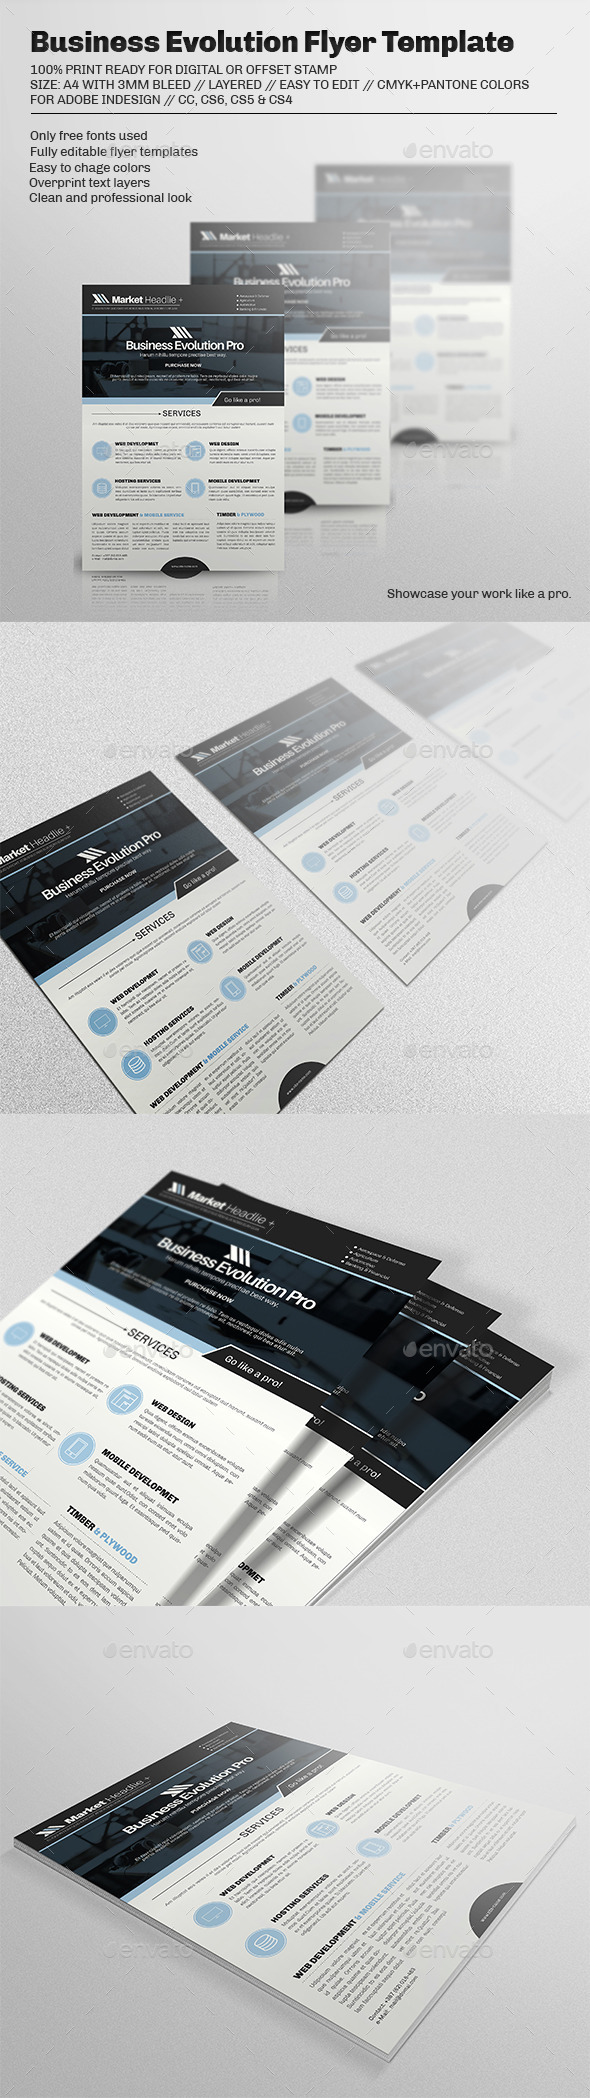 Business Evolution Flyer Template - Corporate Flyers